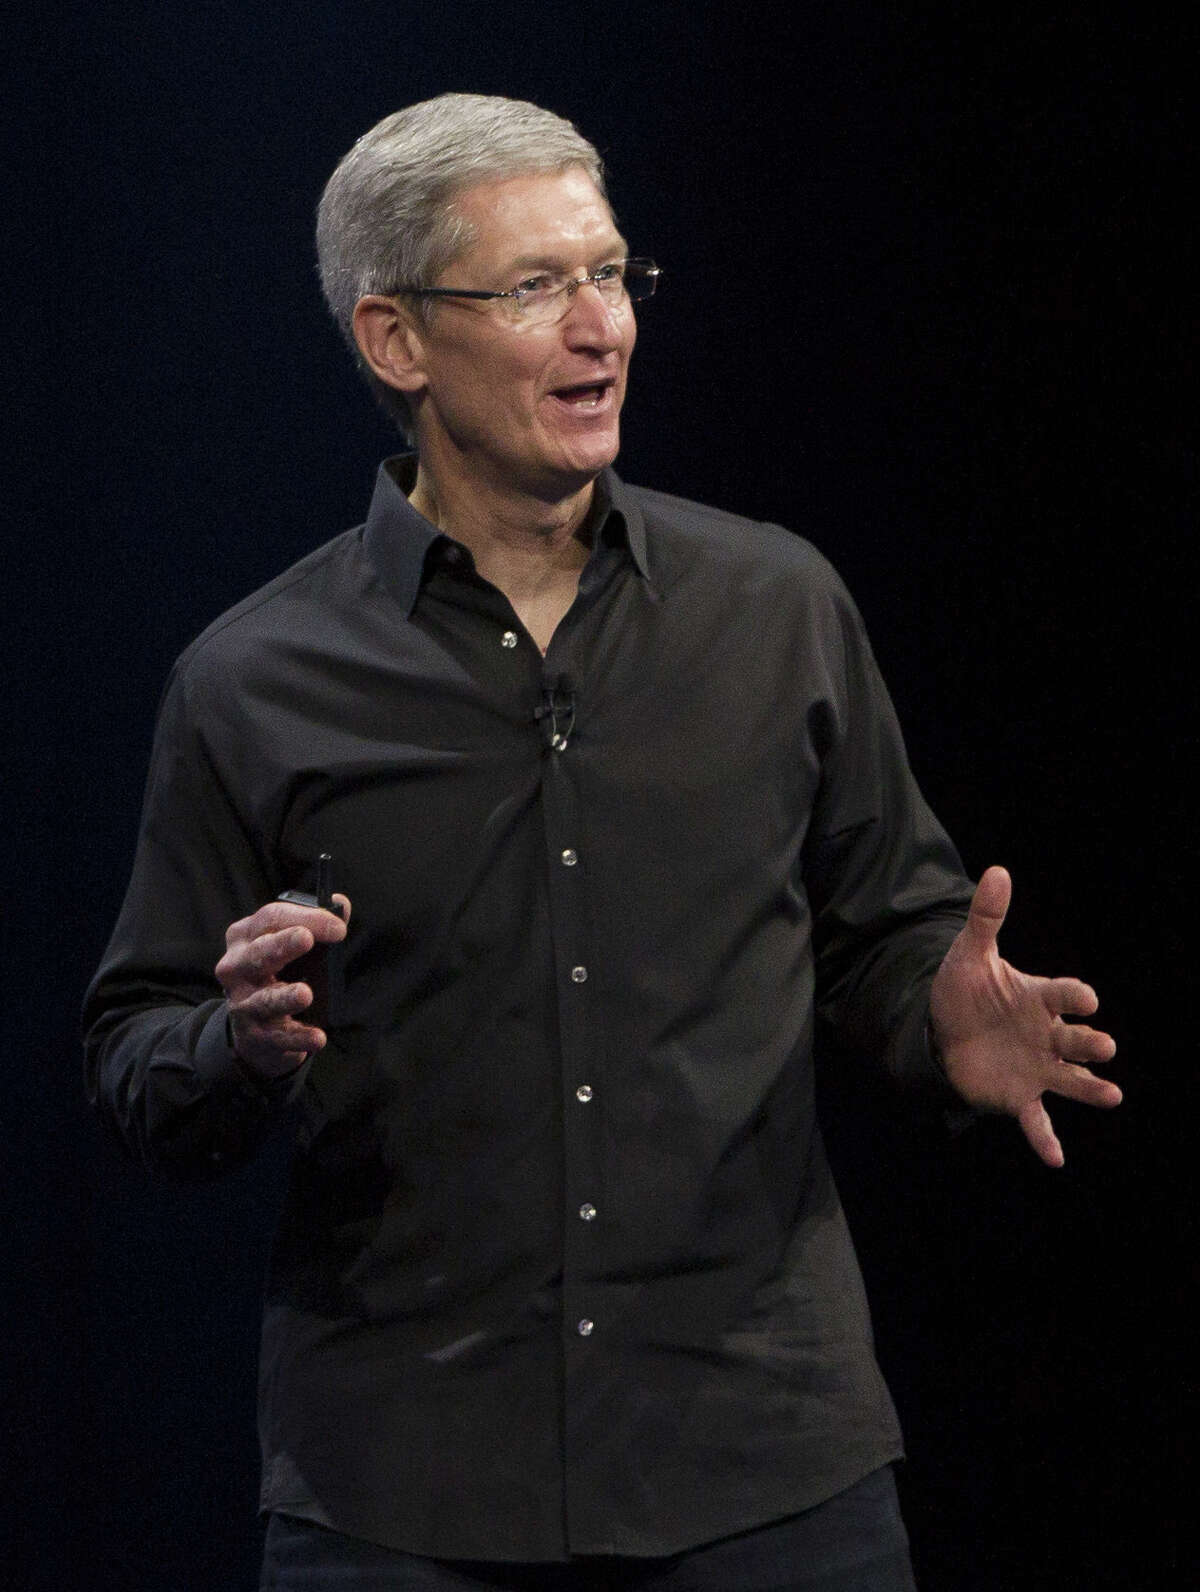 The least-likely choice in the betting pool, at 100-to-1 odds, is Apple CEO Tim Cook. That'd be the biggest hop to a rival since Brett Favre joined the Vikings (yeah, we know he stopped over at the Jets in between).